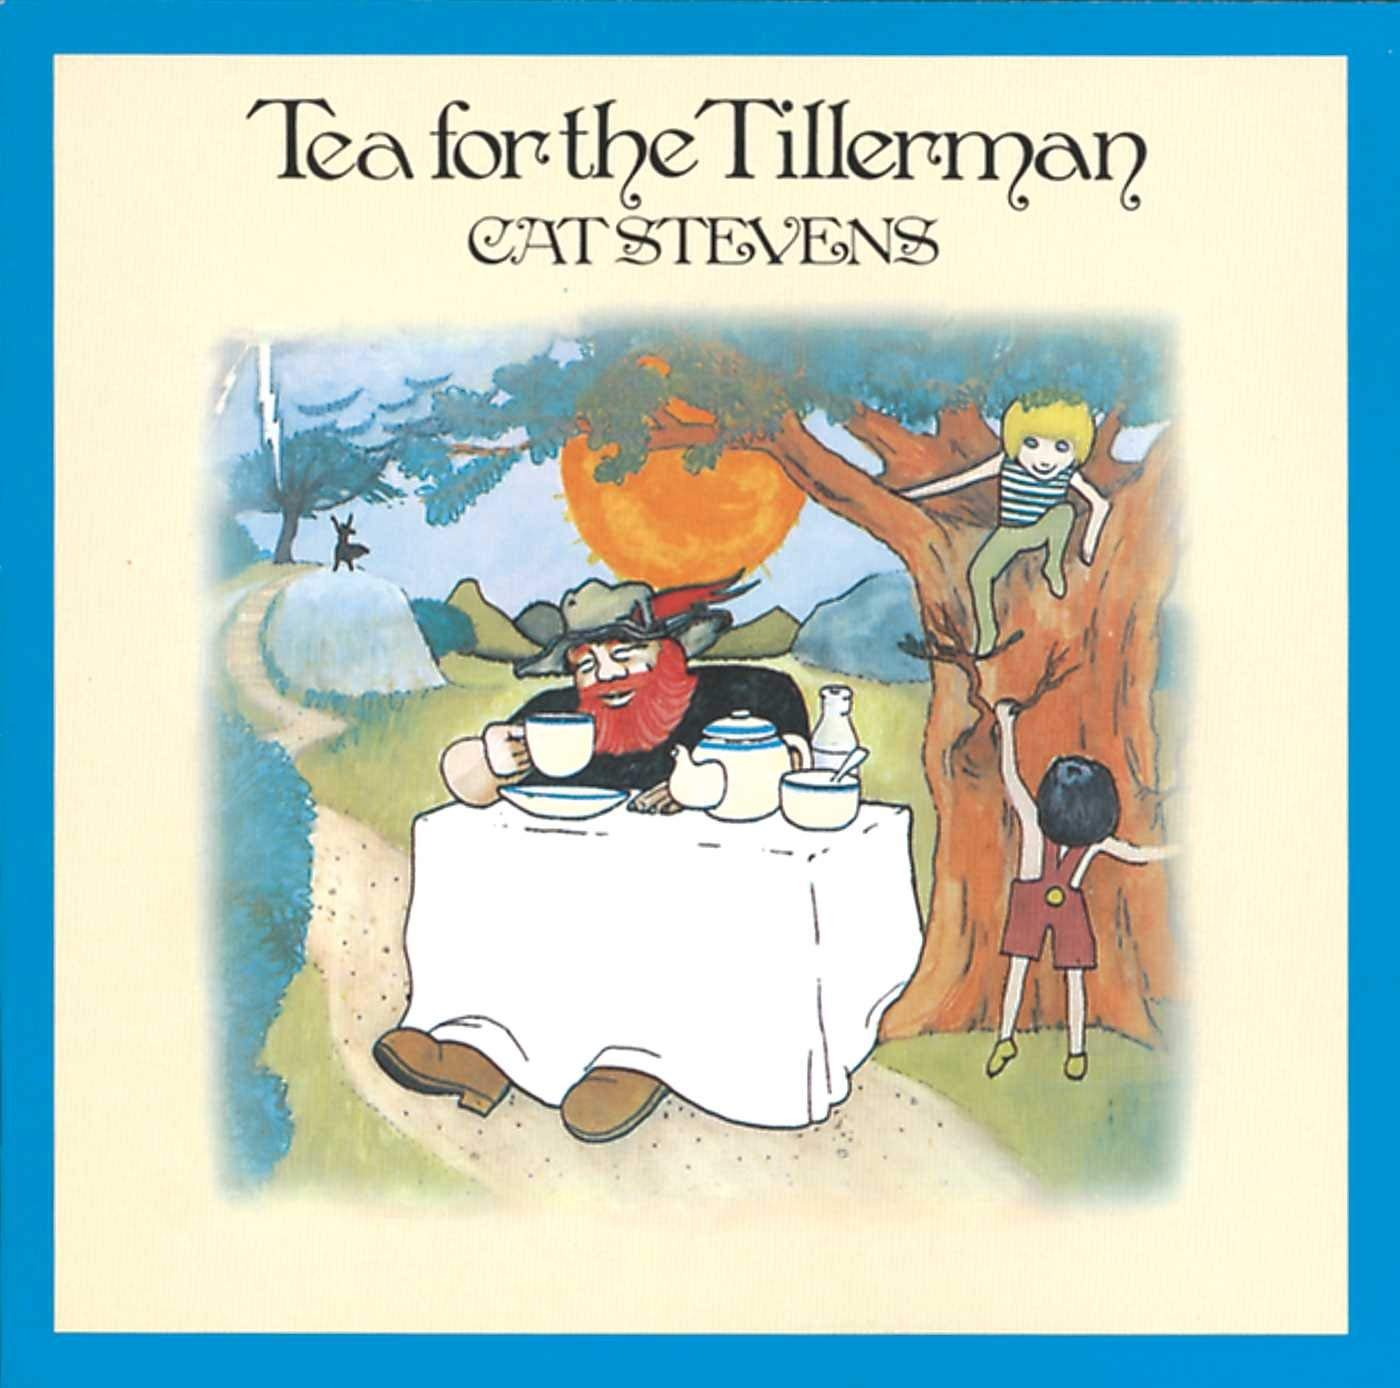 Cat Stevens – Tea for the Tillerman The 100 Greatest Albums of All Time